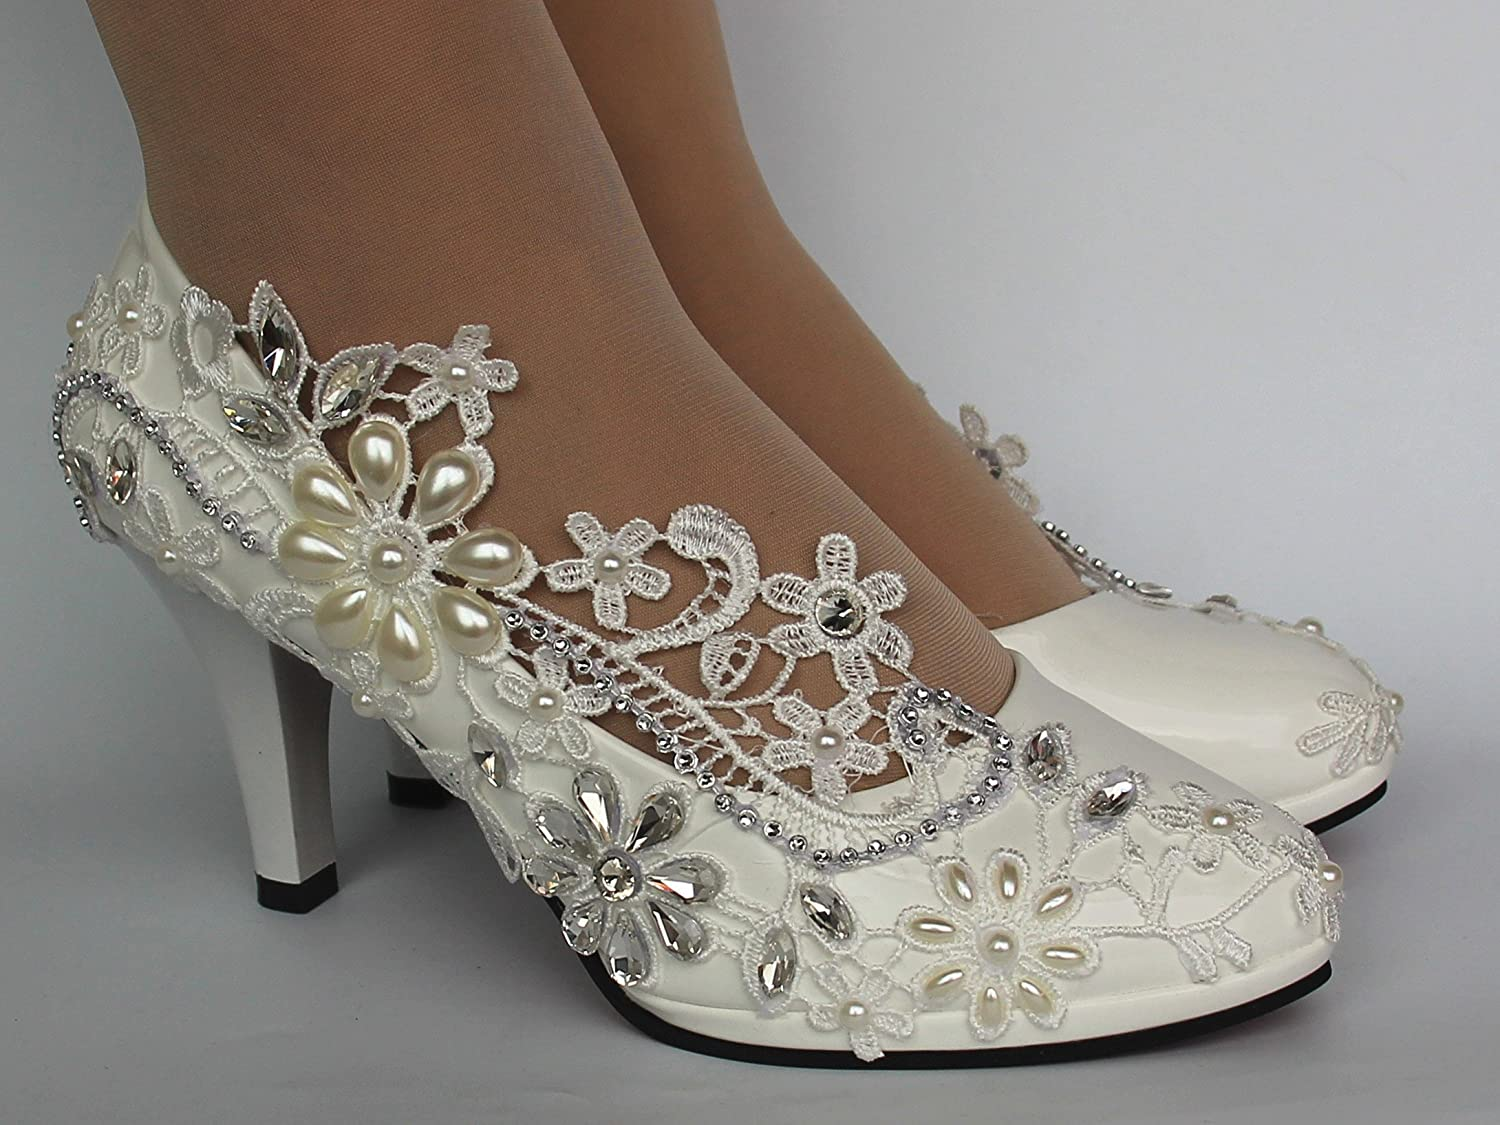 lace white light ivory crystal Wedding shoes Bridal heels pumps size 5-9.5